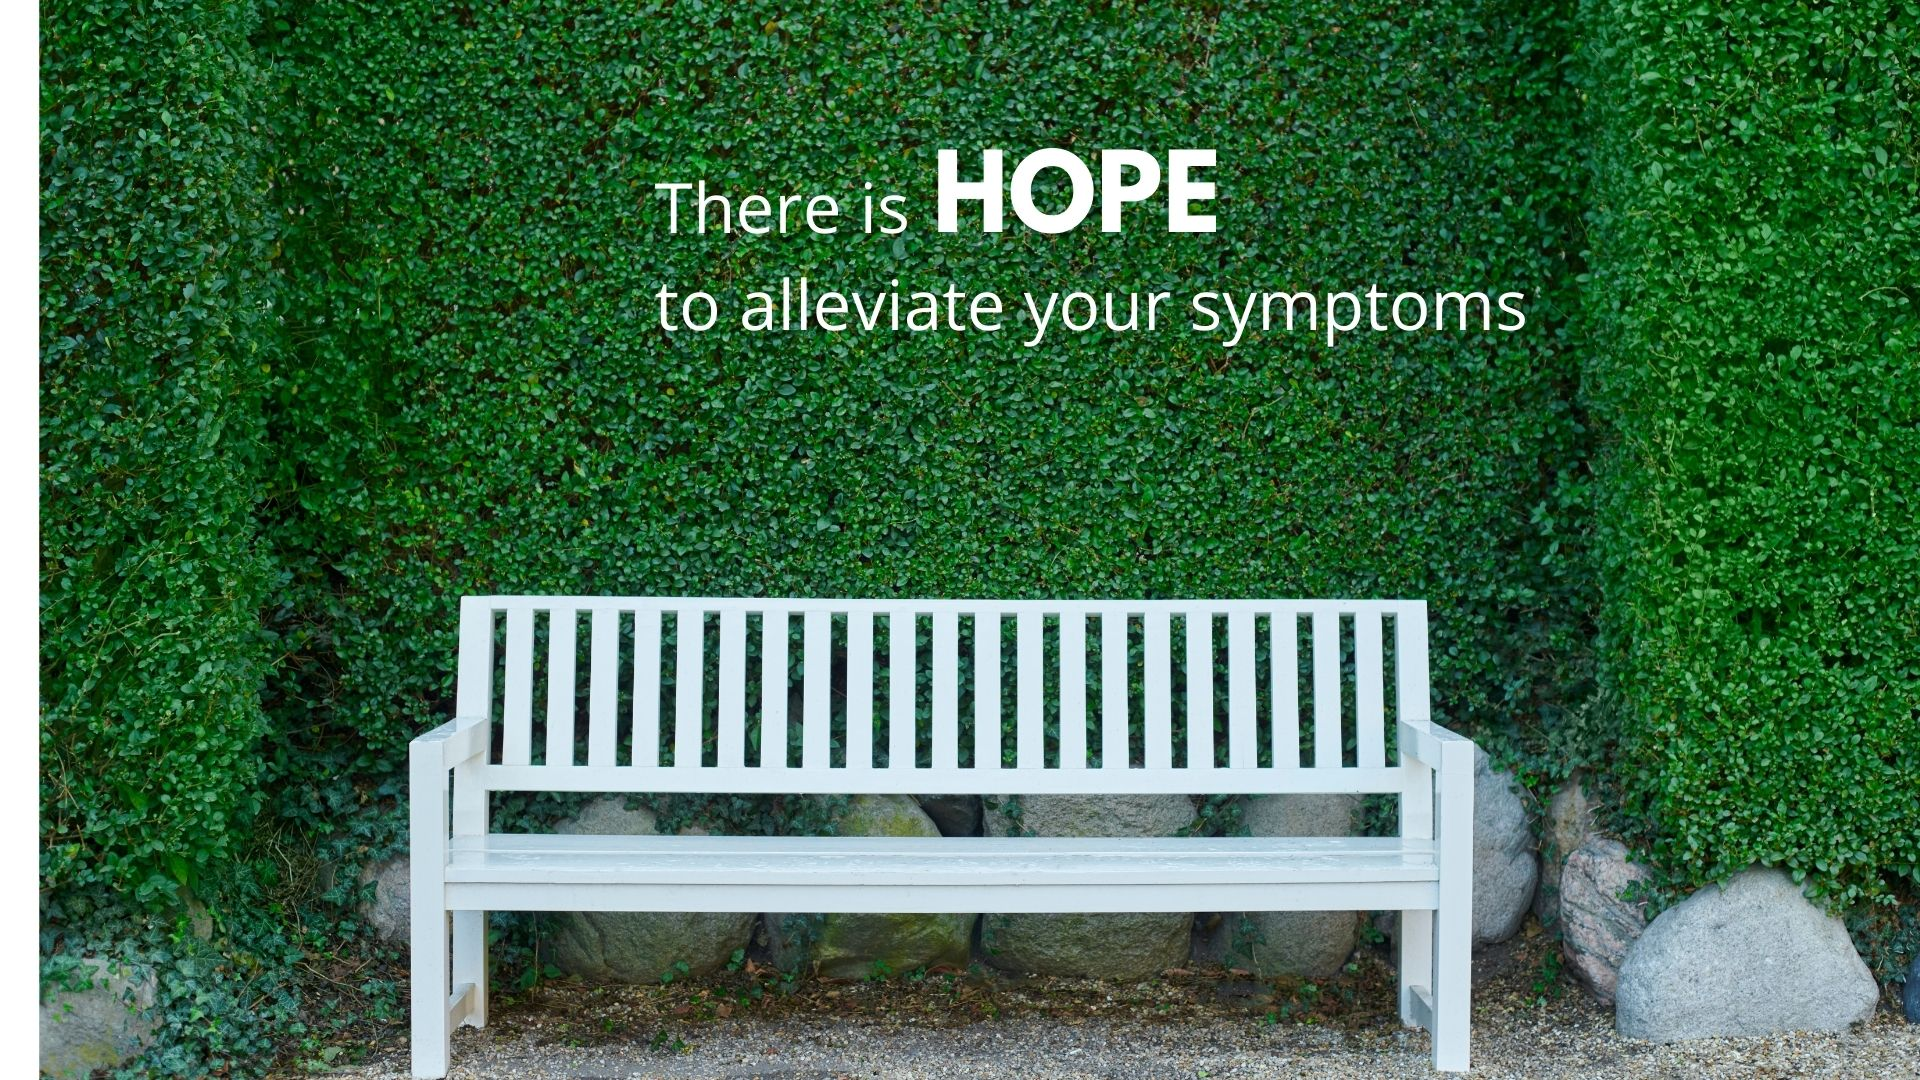 THERE IS HOPE to alleviate symptoms